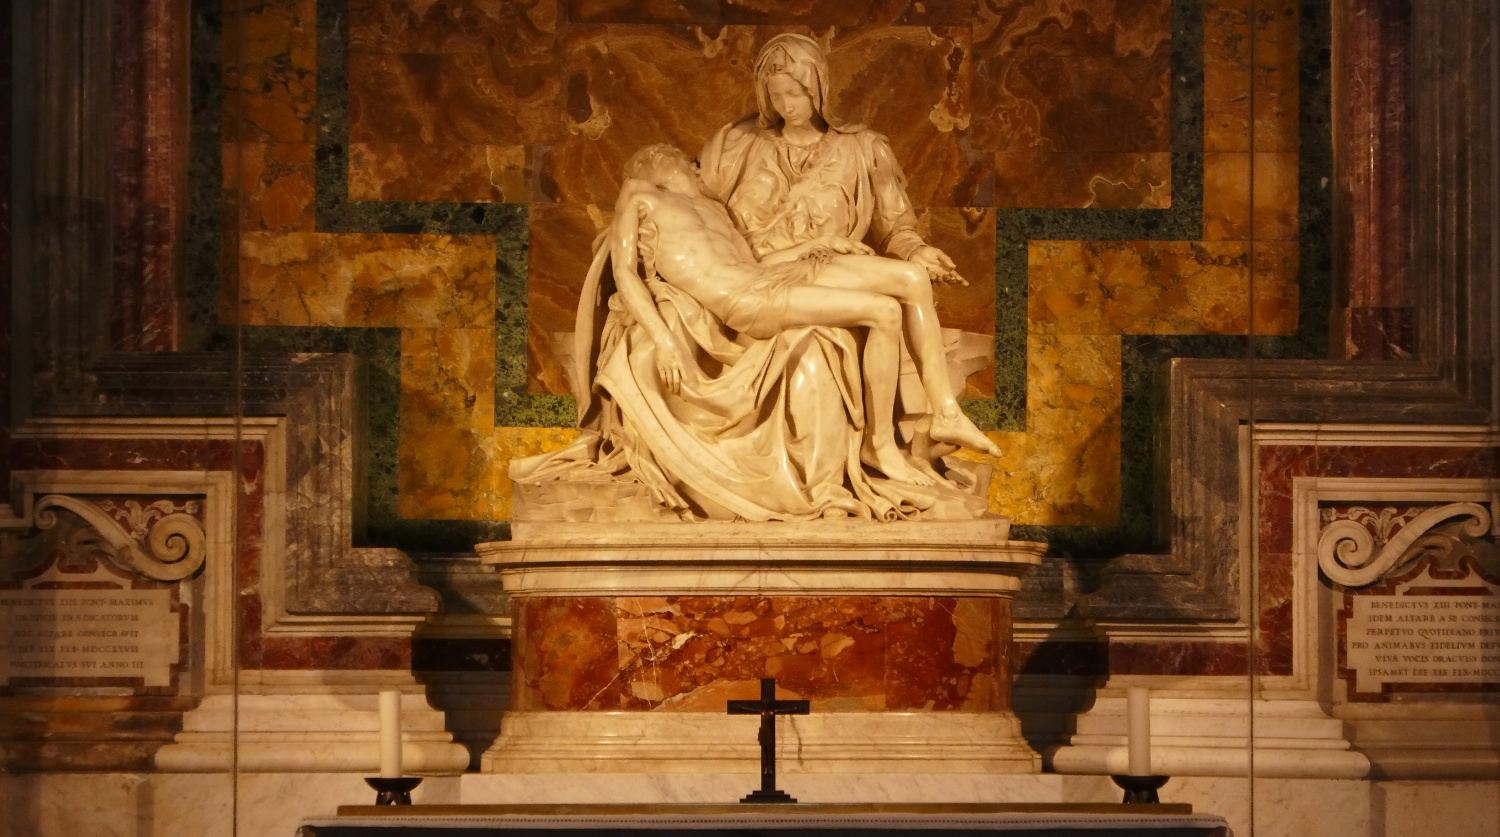 The Pieta (The Pity) Sculpture by Michelangelo Buonarroti, St. Peter's Basilica, Vatican City State